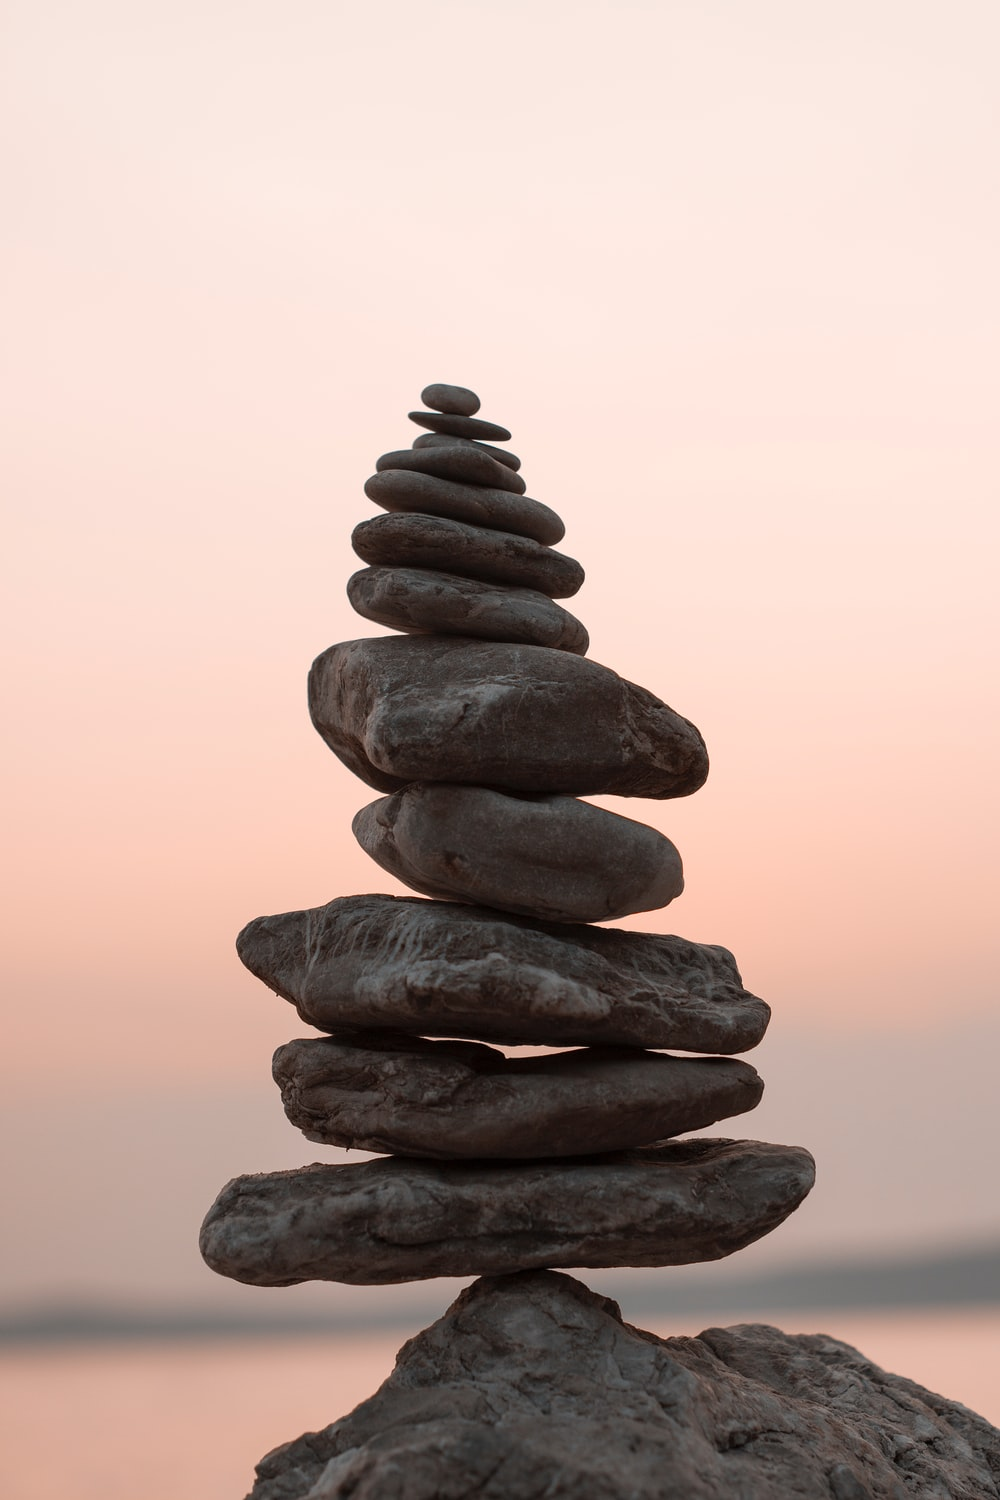 A stack of rocks against a pink sky